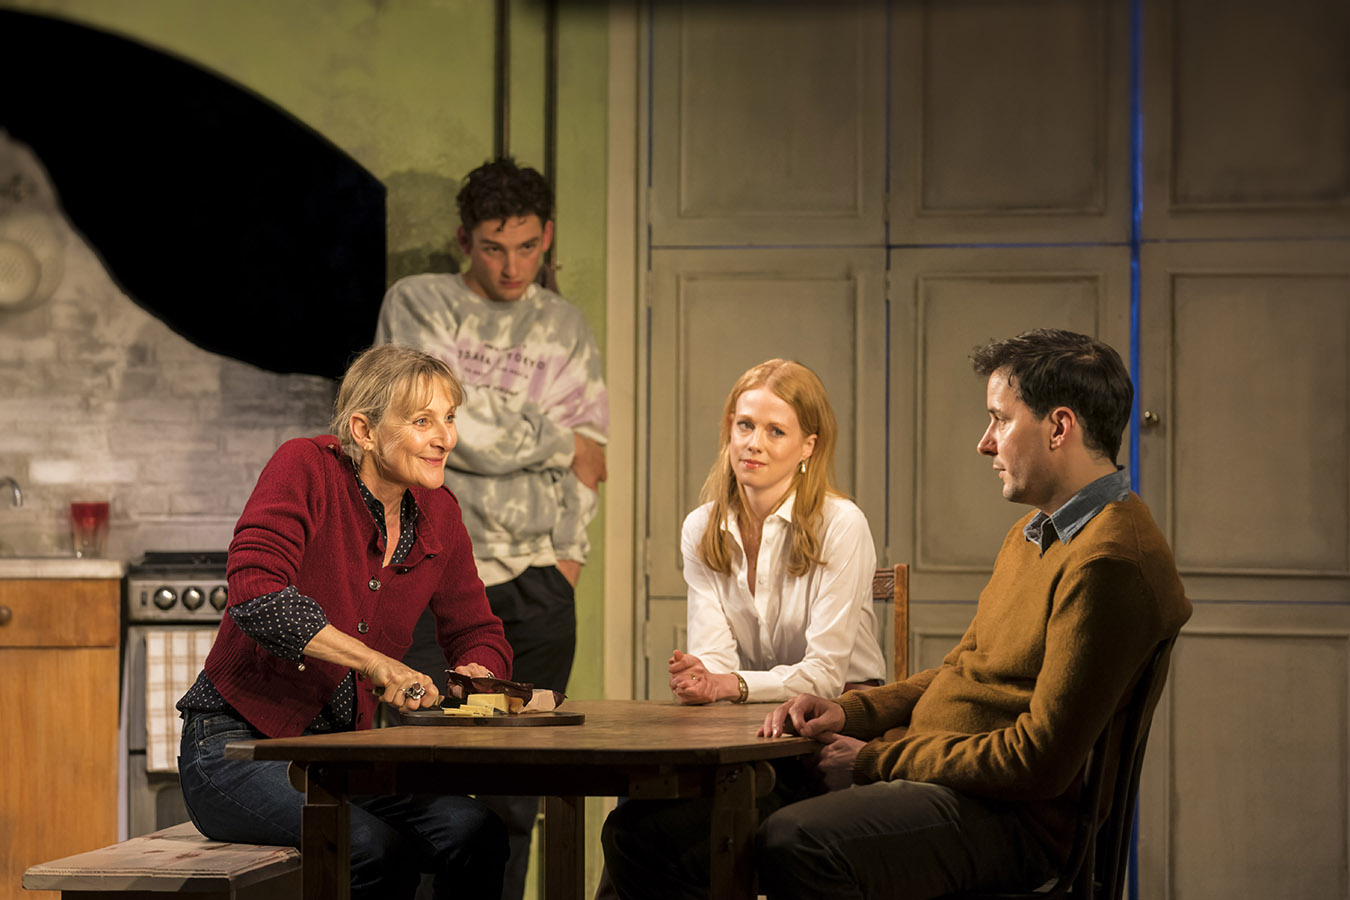 Lesley Sharp, Laurie Davidson, Zoe Boyle and Sam Swainsbury photographed by Johan Persson